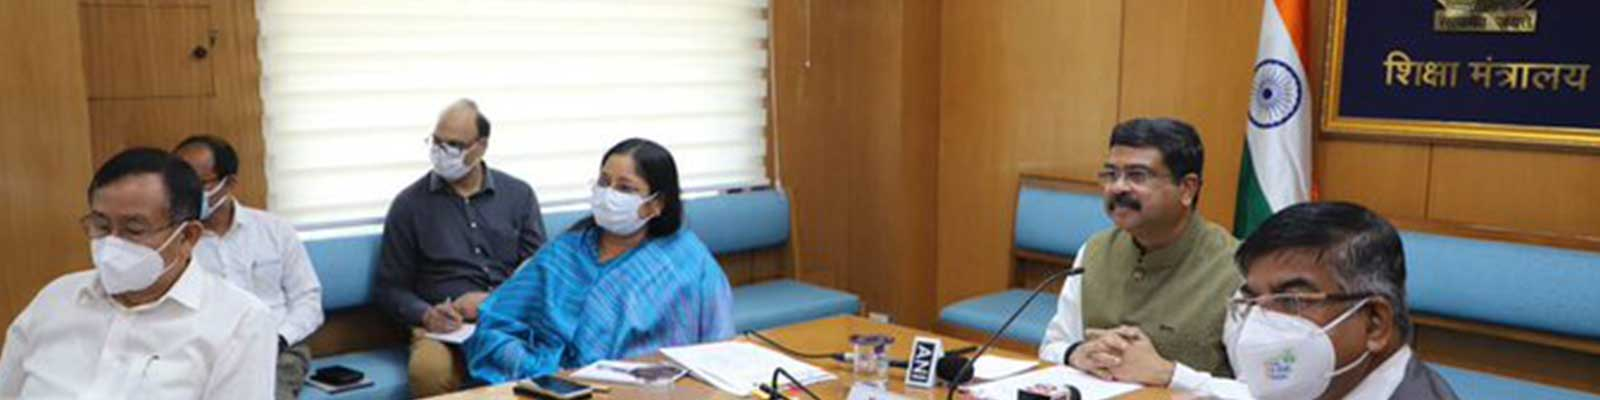 image of Commission for Scientific and Technical Terminology, Government of India - 5